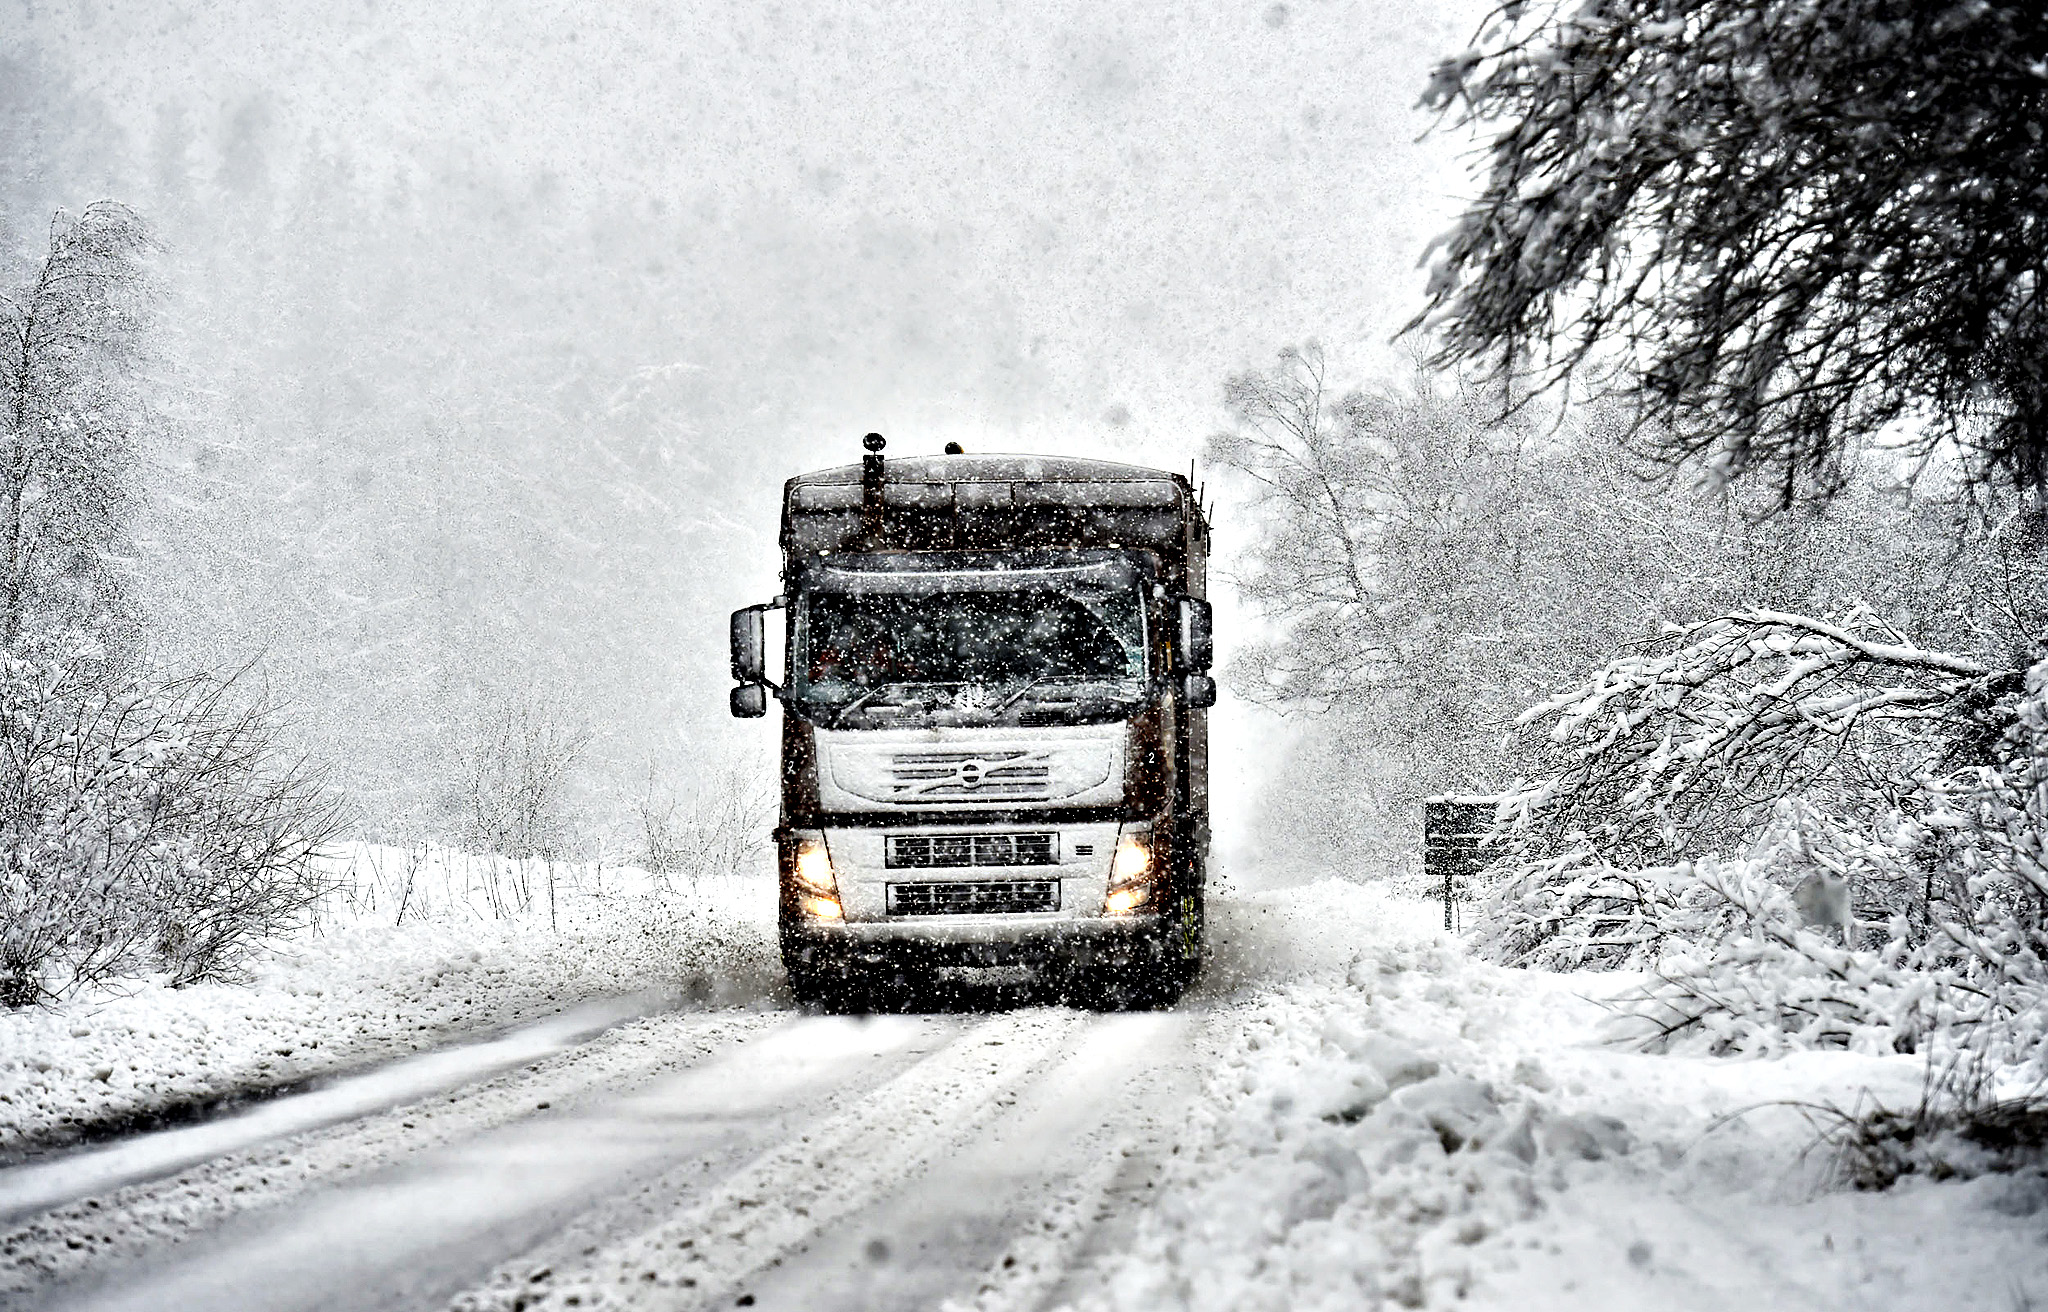 Blizzards sweep through Kielder in Northumberland, as snow covers the area